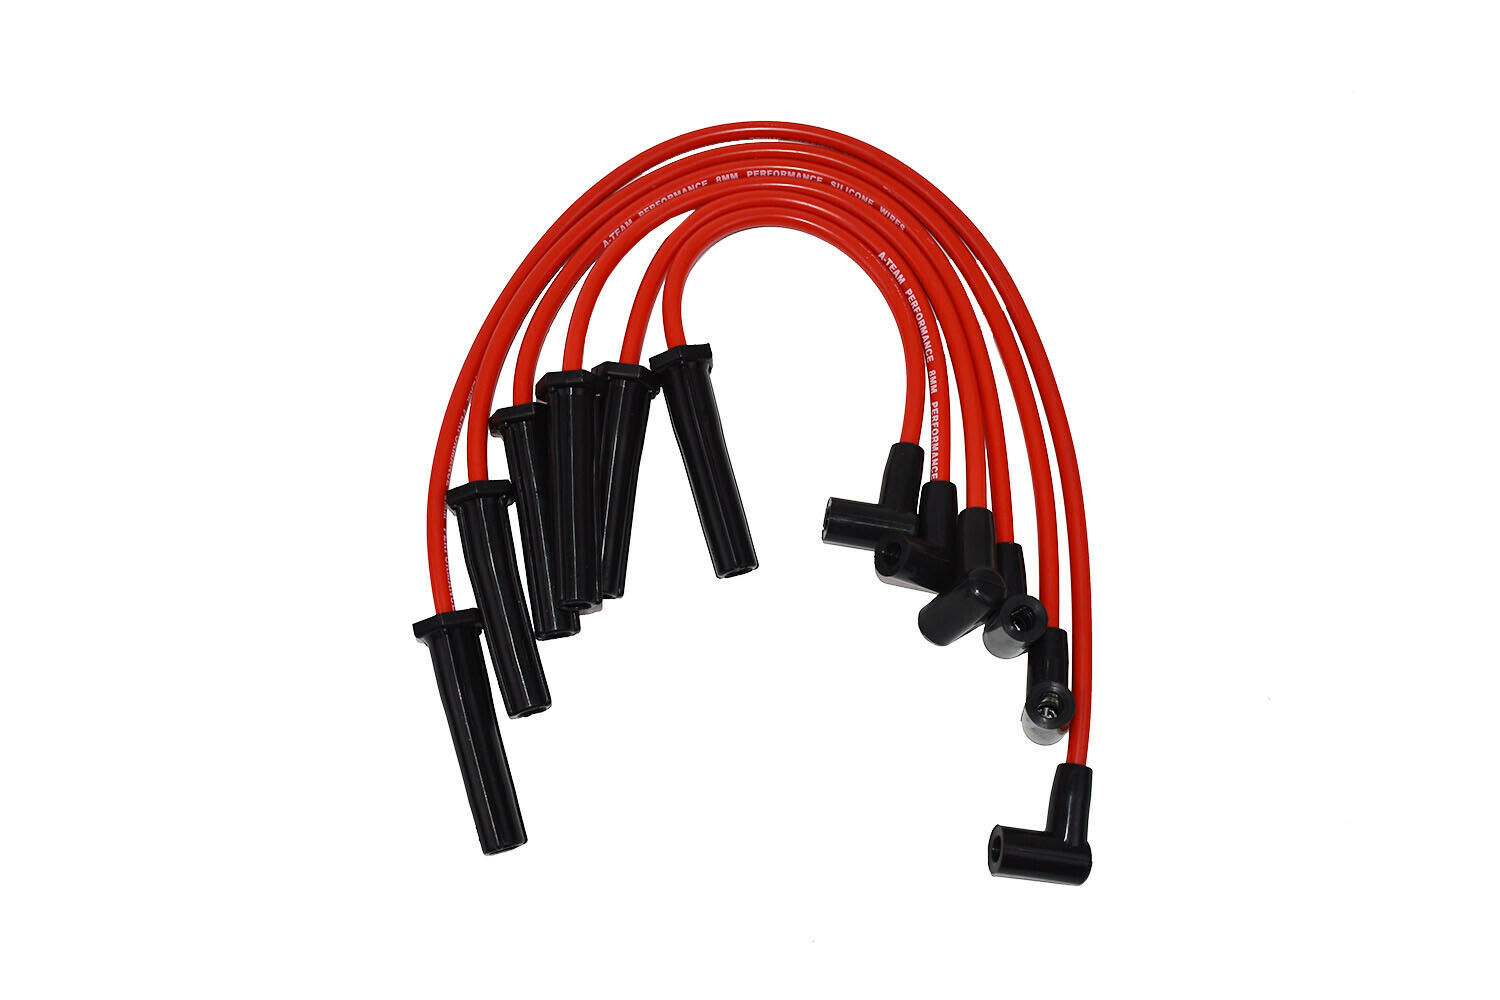 GMC Chevy 6 Cylinder 230 250 292 6 Cyl 8.0mm Red Silicone Spark Plug Wires Set